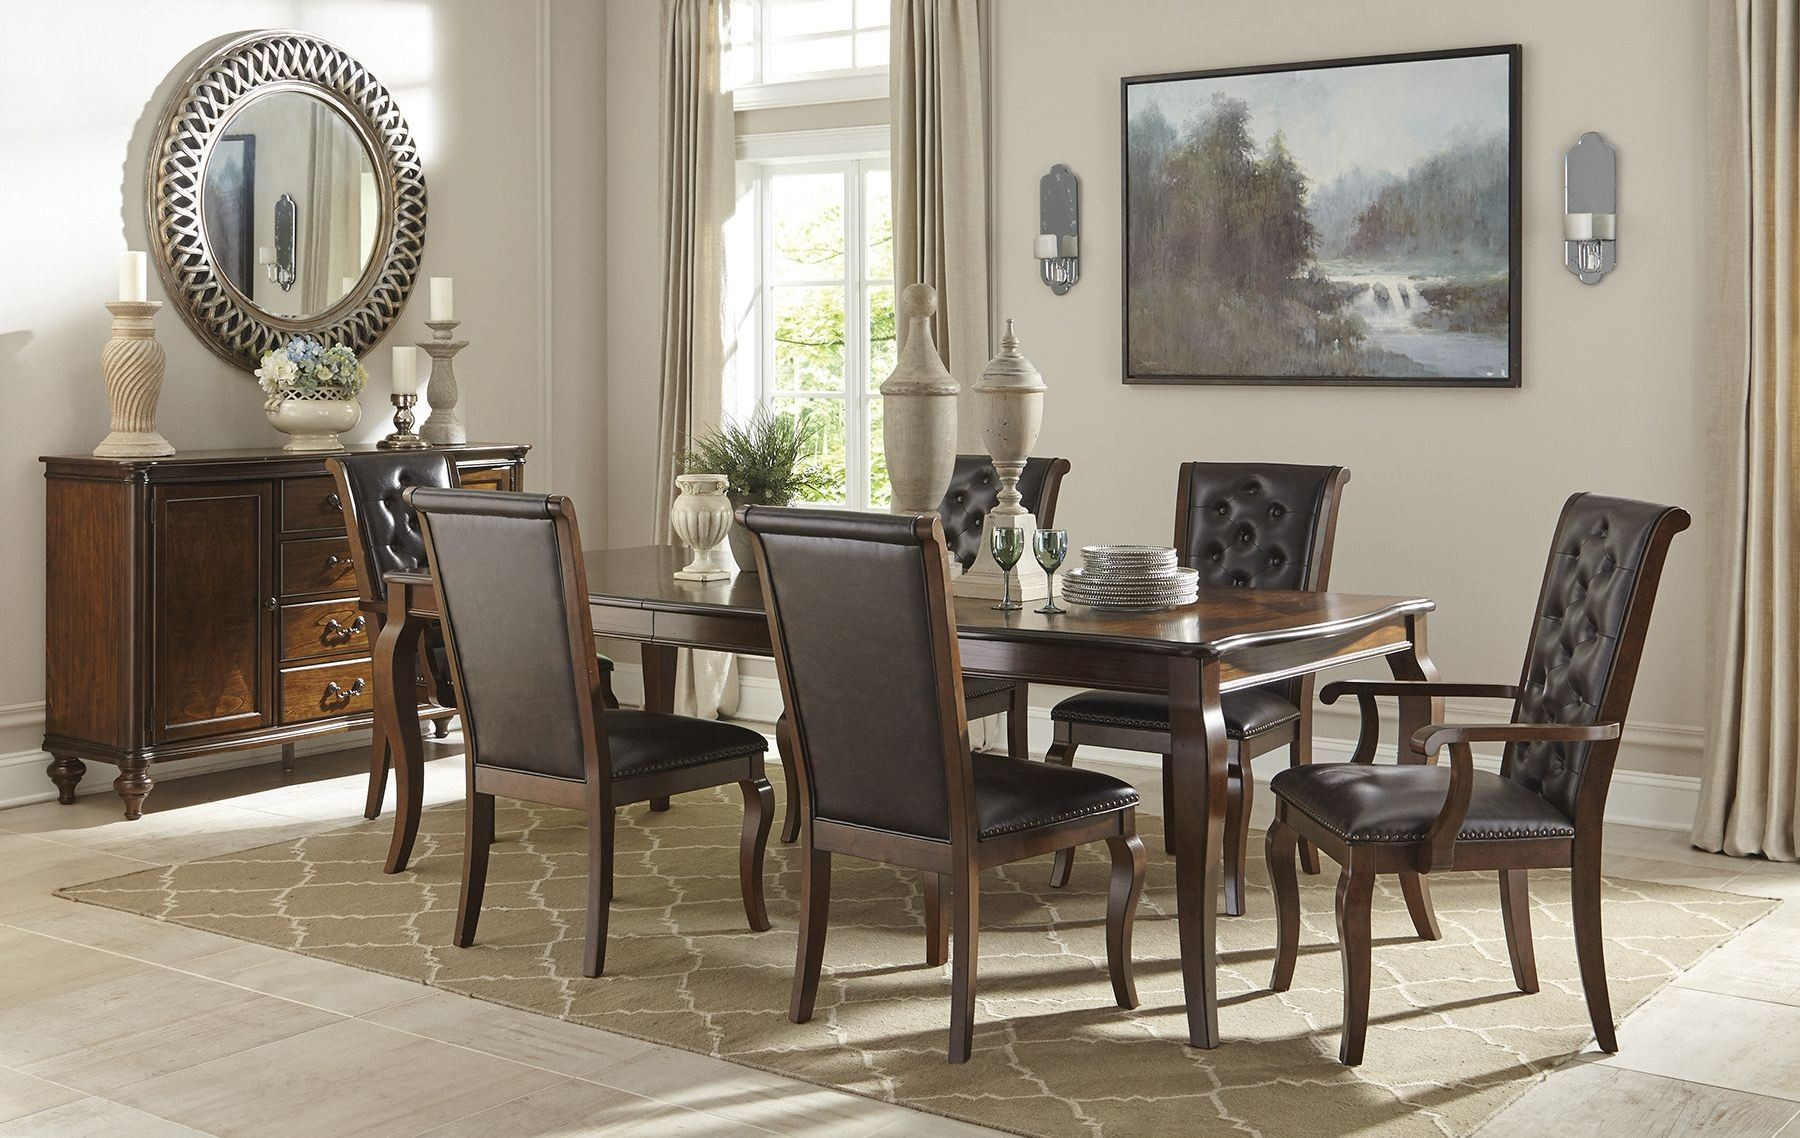 Williamsburg Roasted Chestnut Extendable Dining Room Set 106811 Coaster Fur